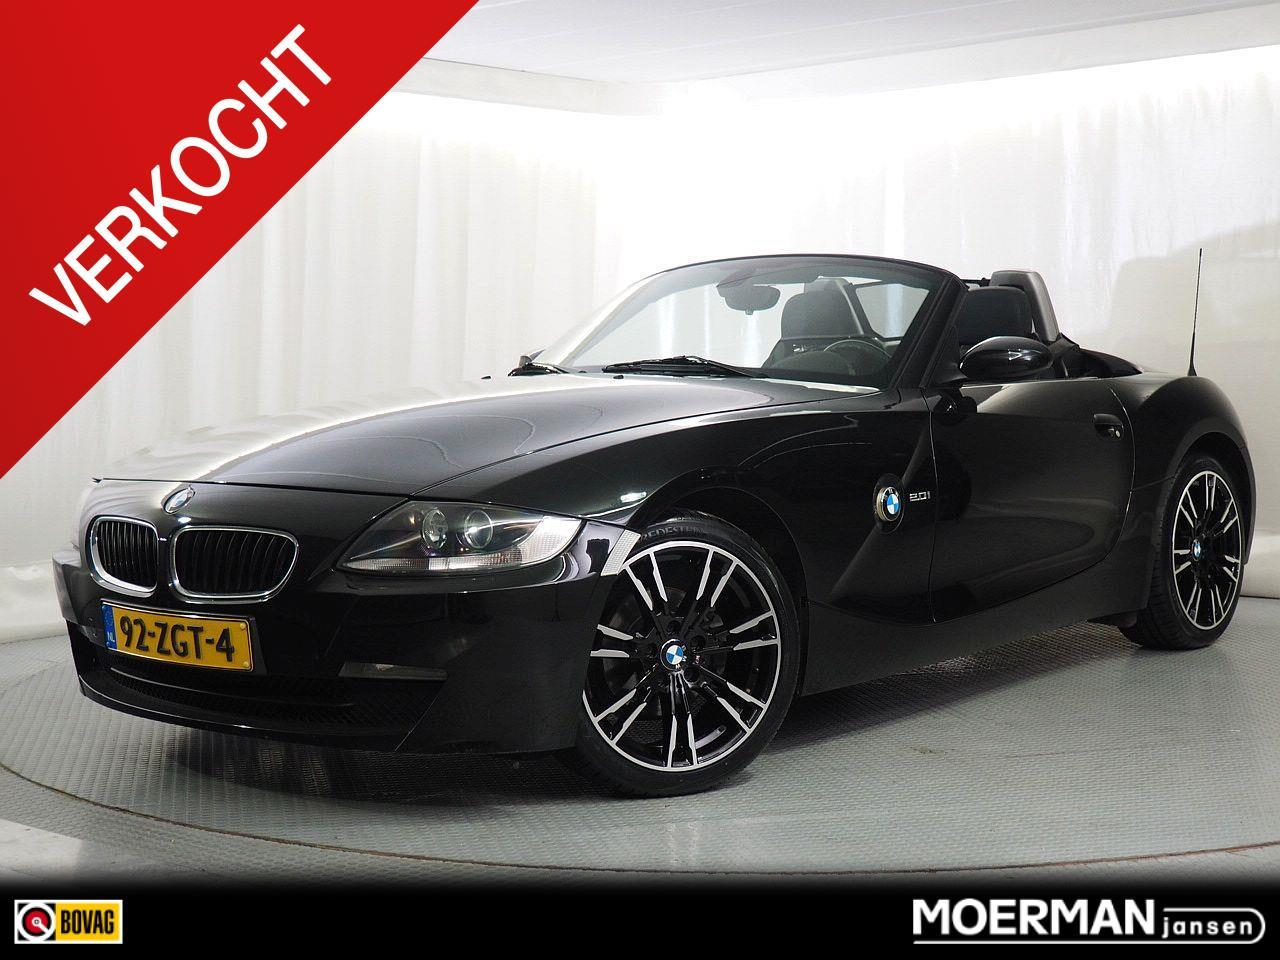 Bmw Z4 Roadster 2.0i executive verkocht